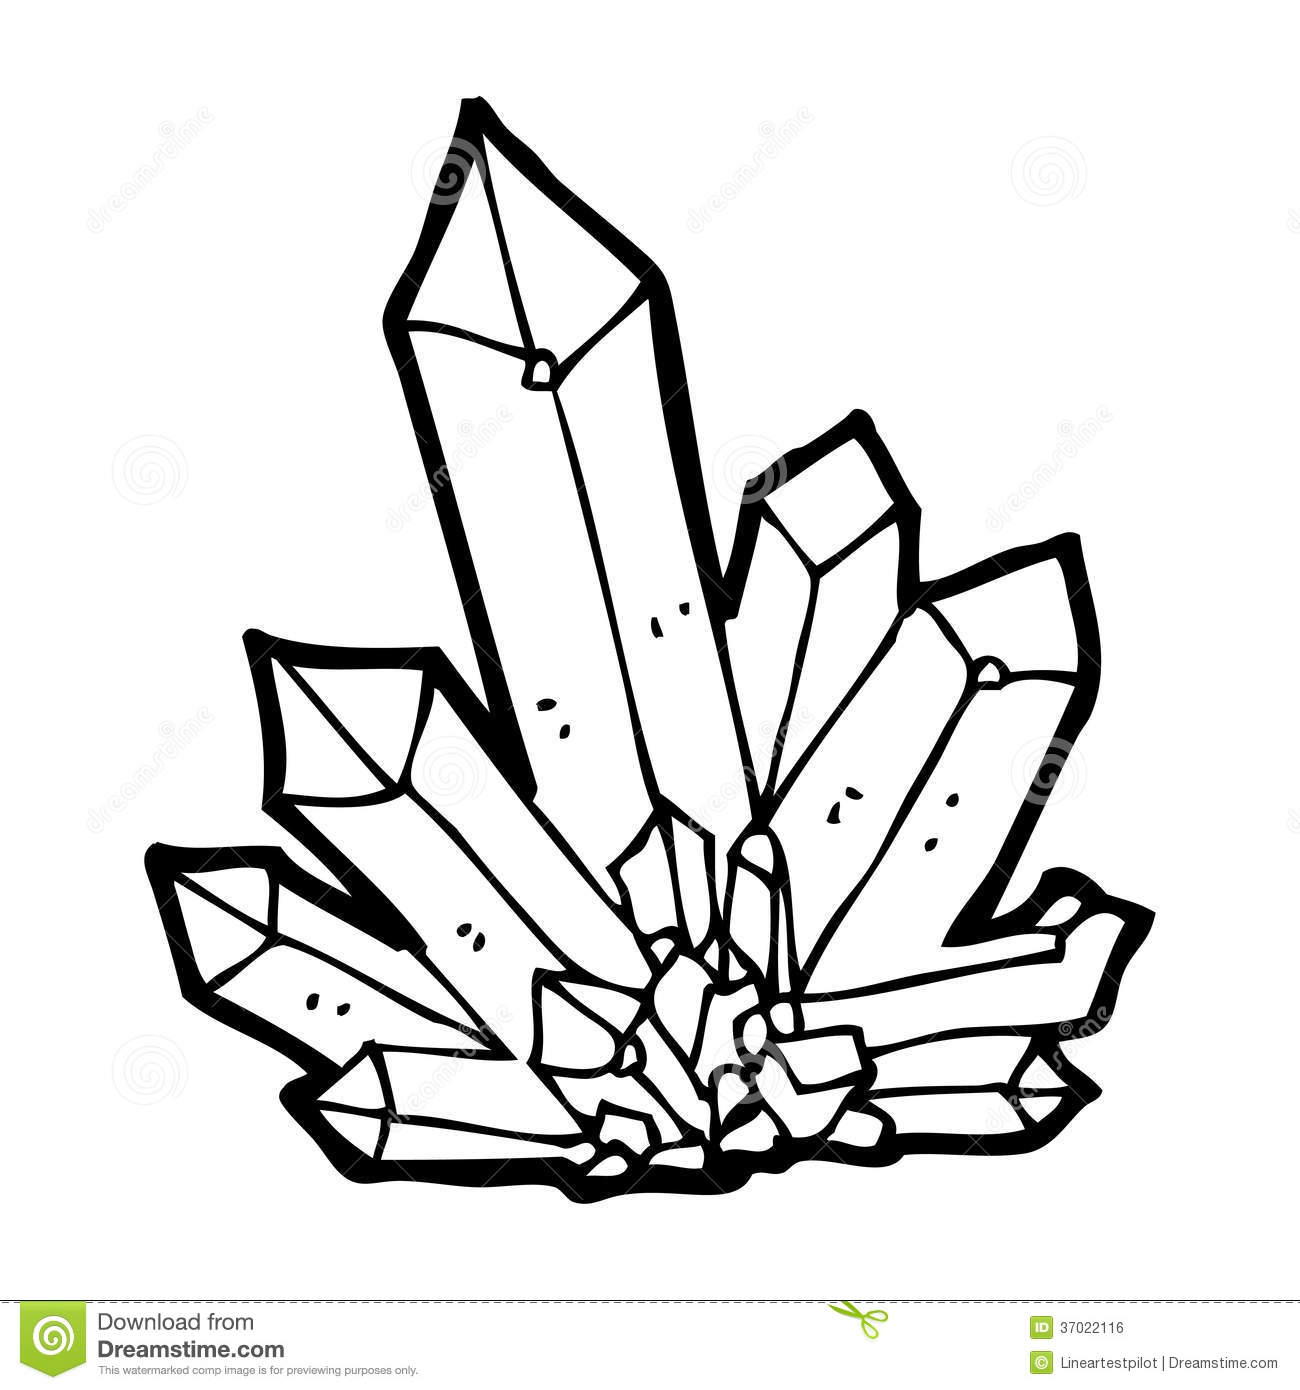 Crystals clipart #6, Download drawings